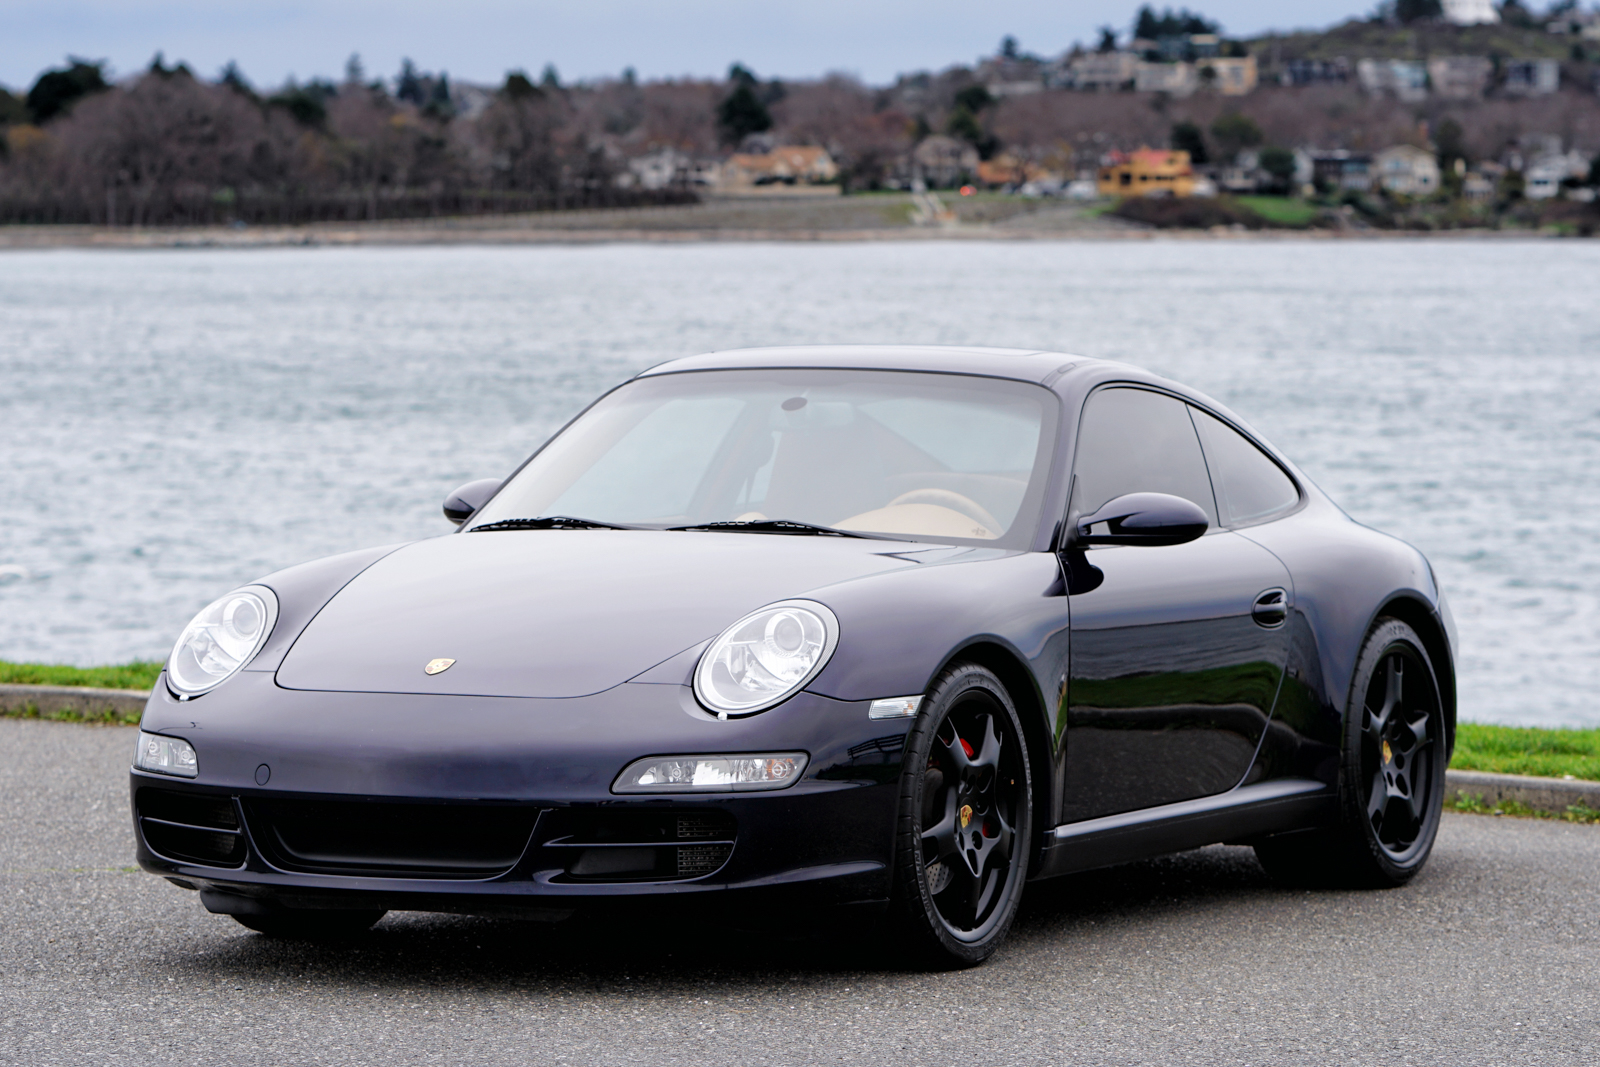 2007 Porsche 911 Carrera S Coupe for sale